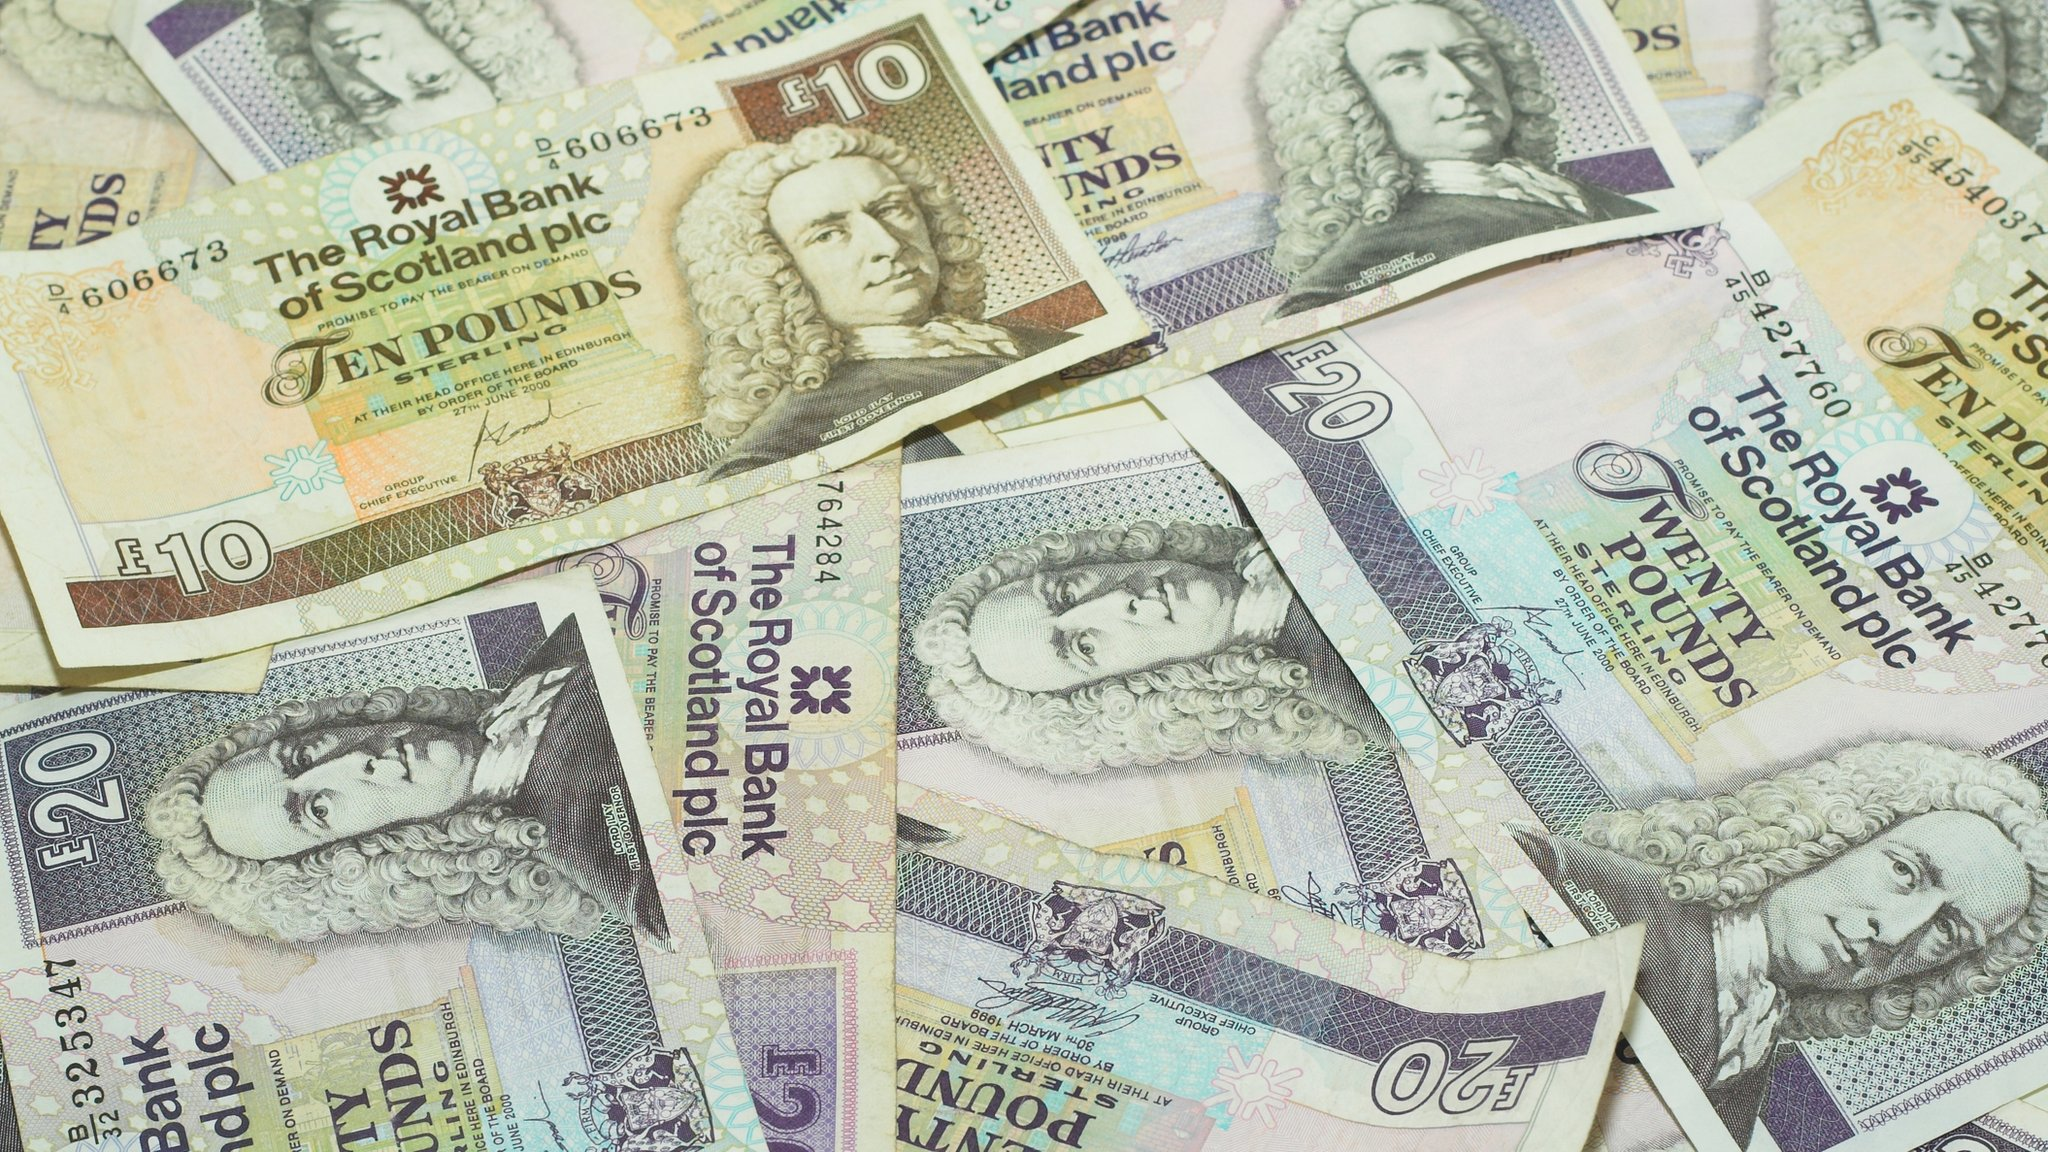 Scams in Dumfries and Galloway take 'serious amounts of money'